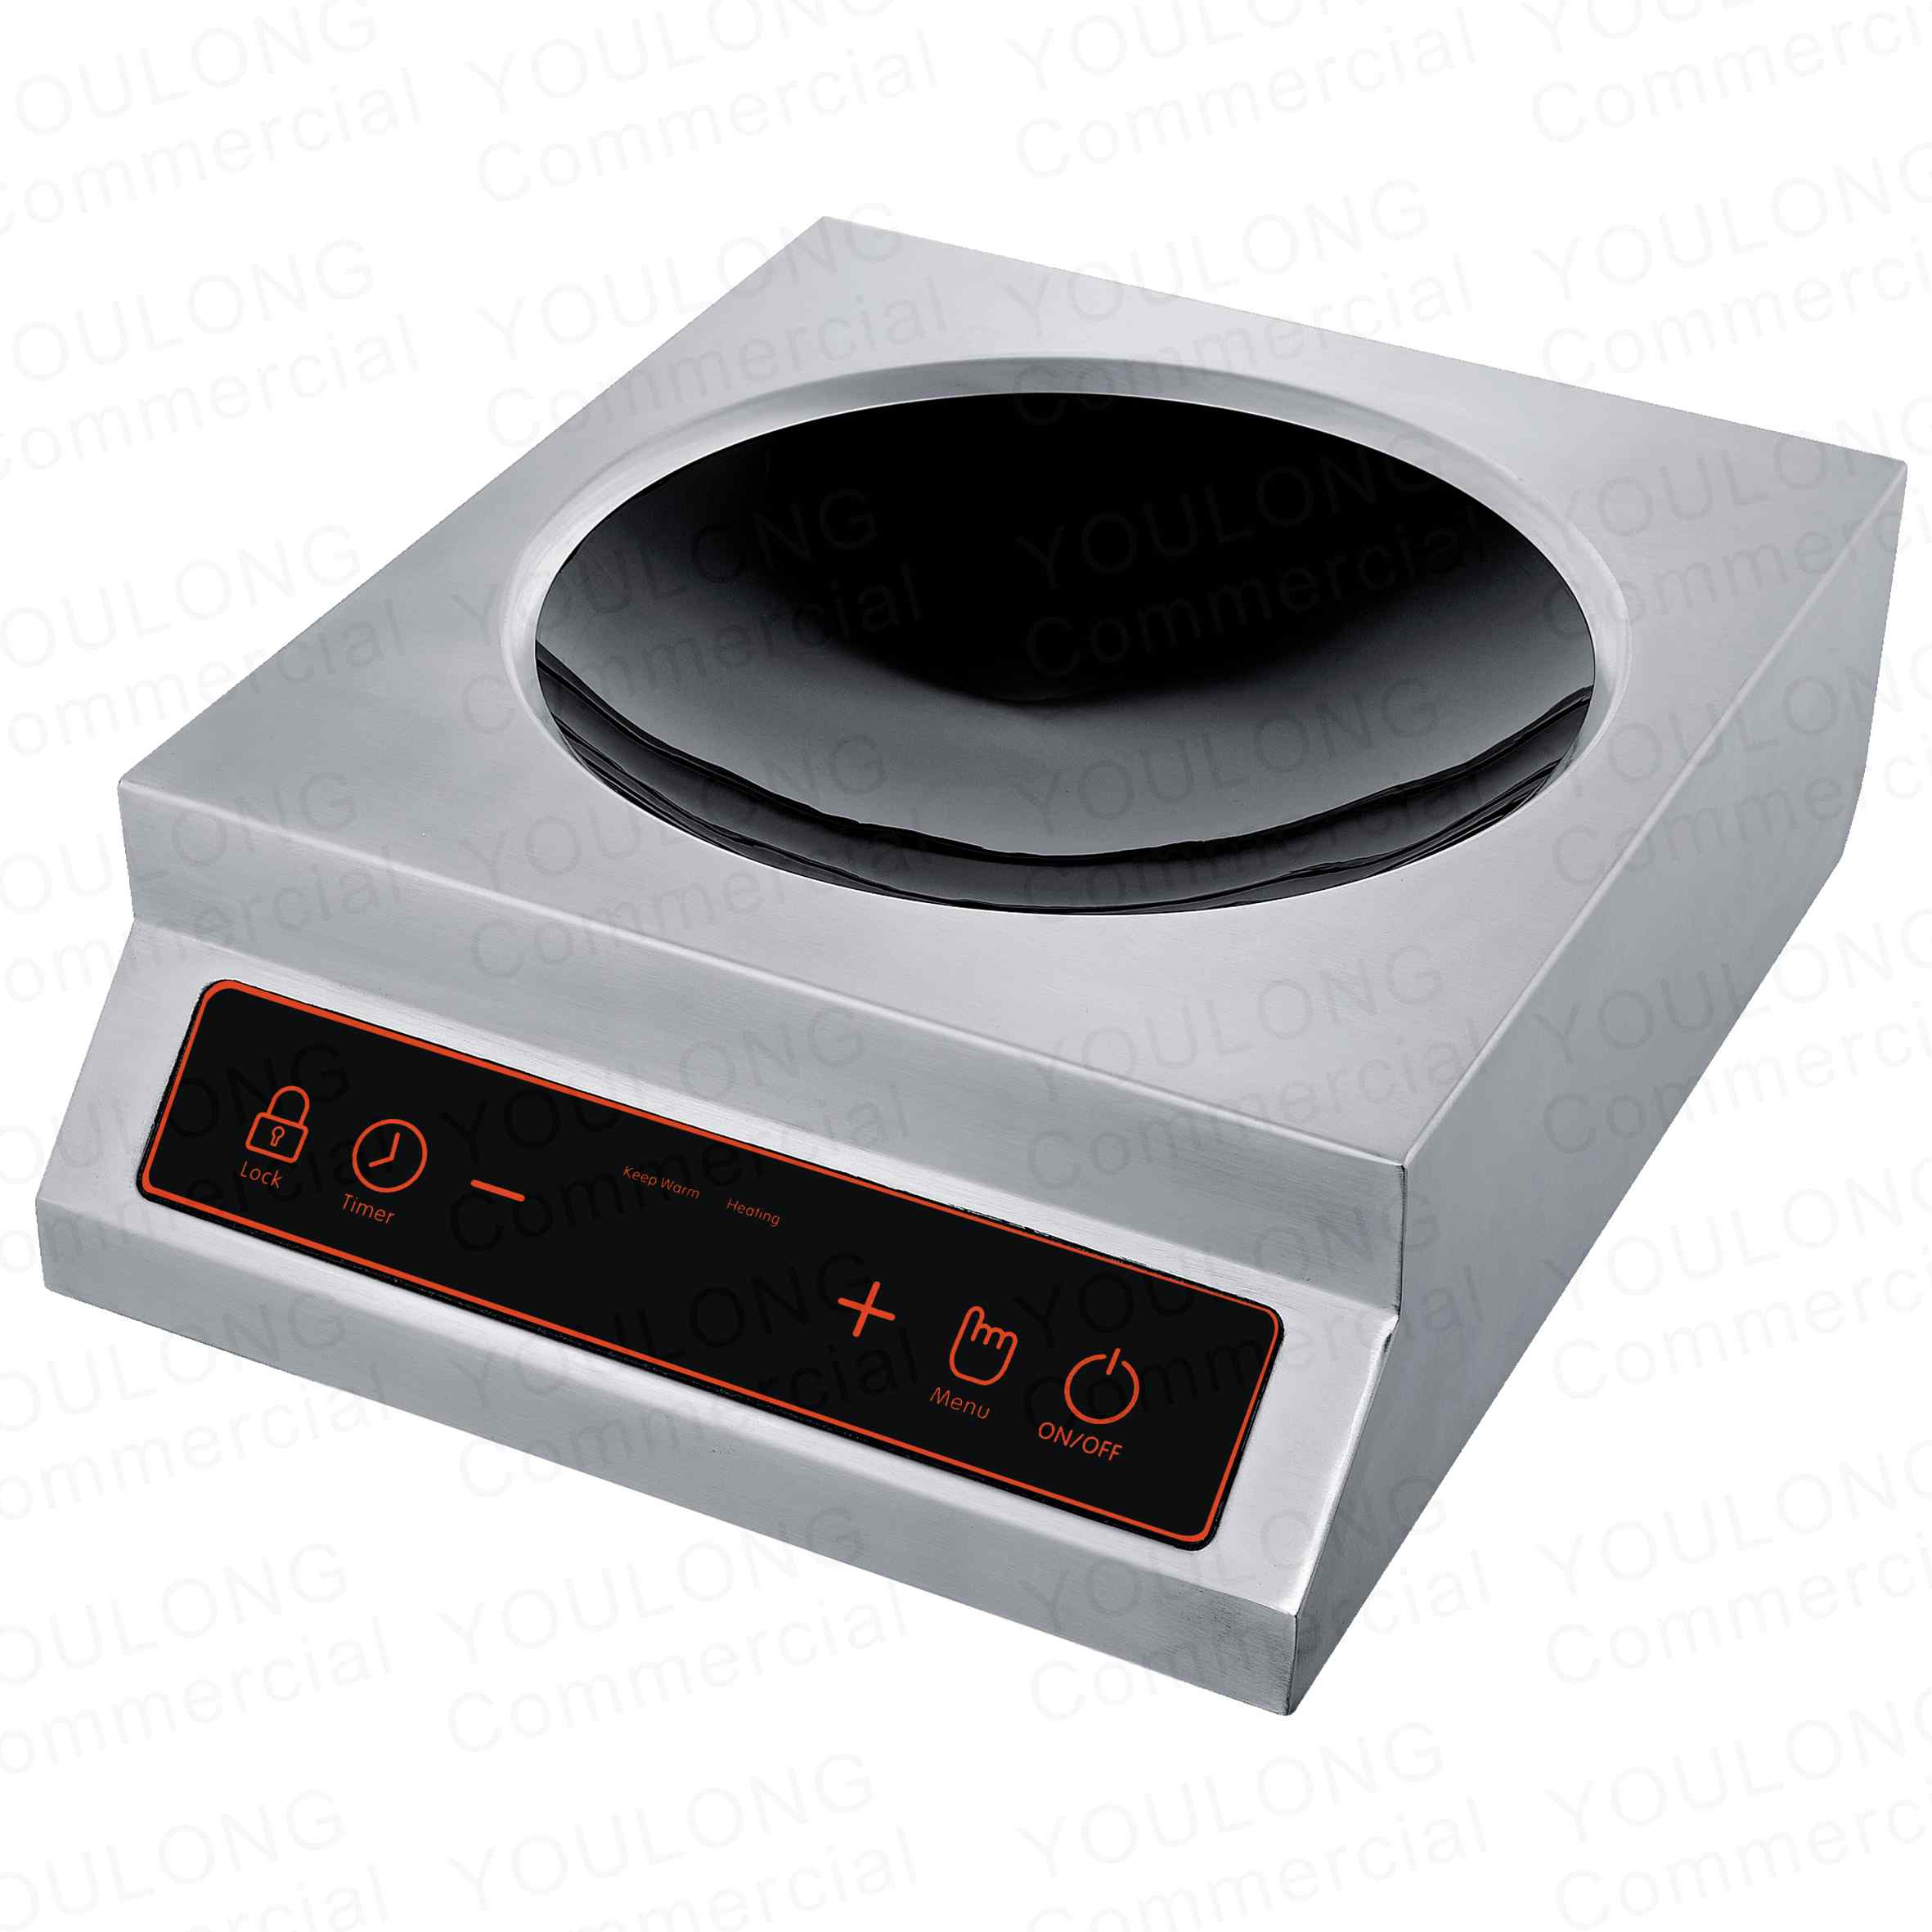 induction cooker C5101-BW Press Control